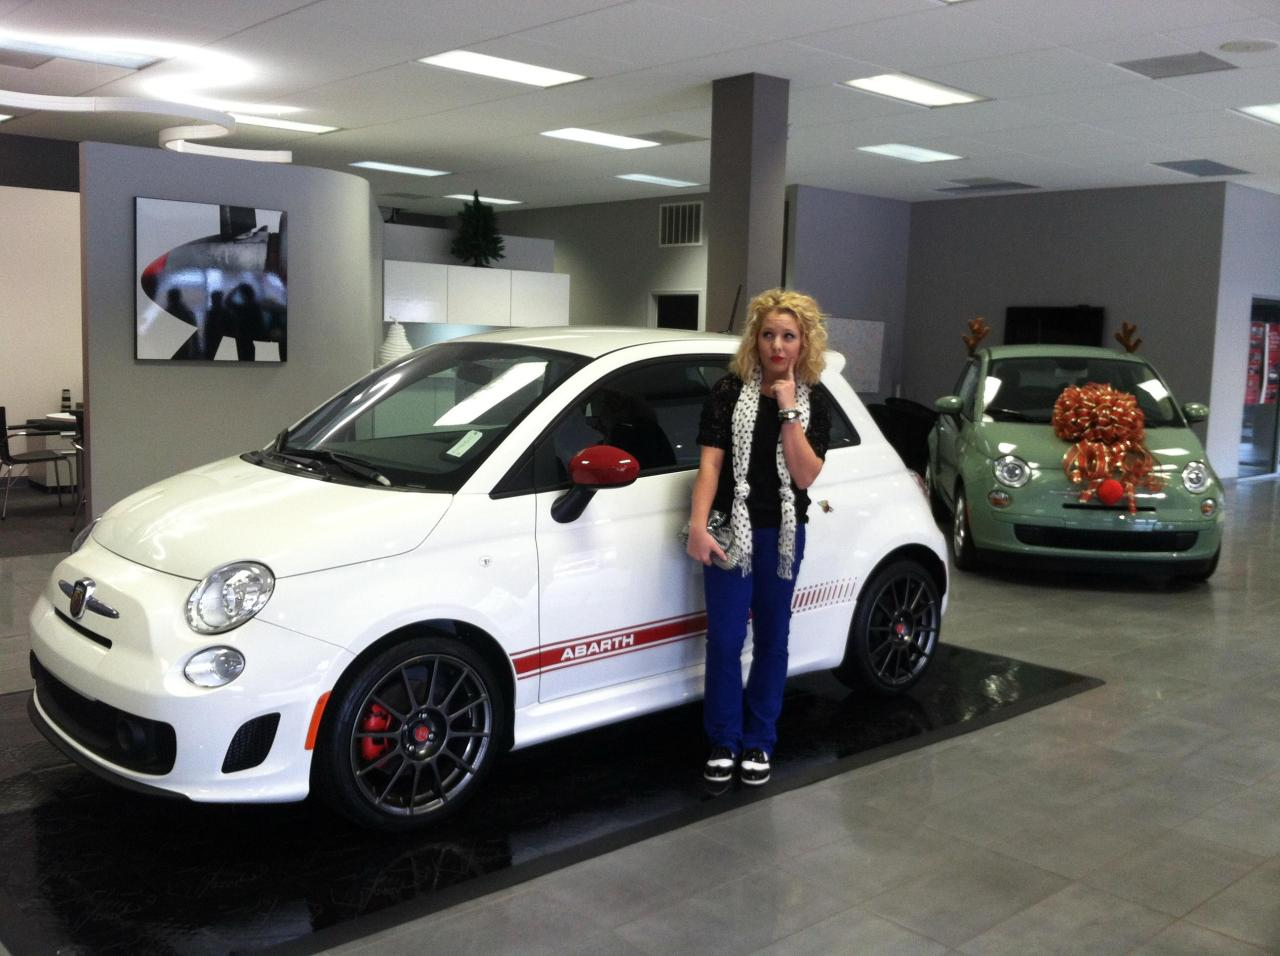 Hey, Santa...maybe this Abarth?